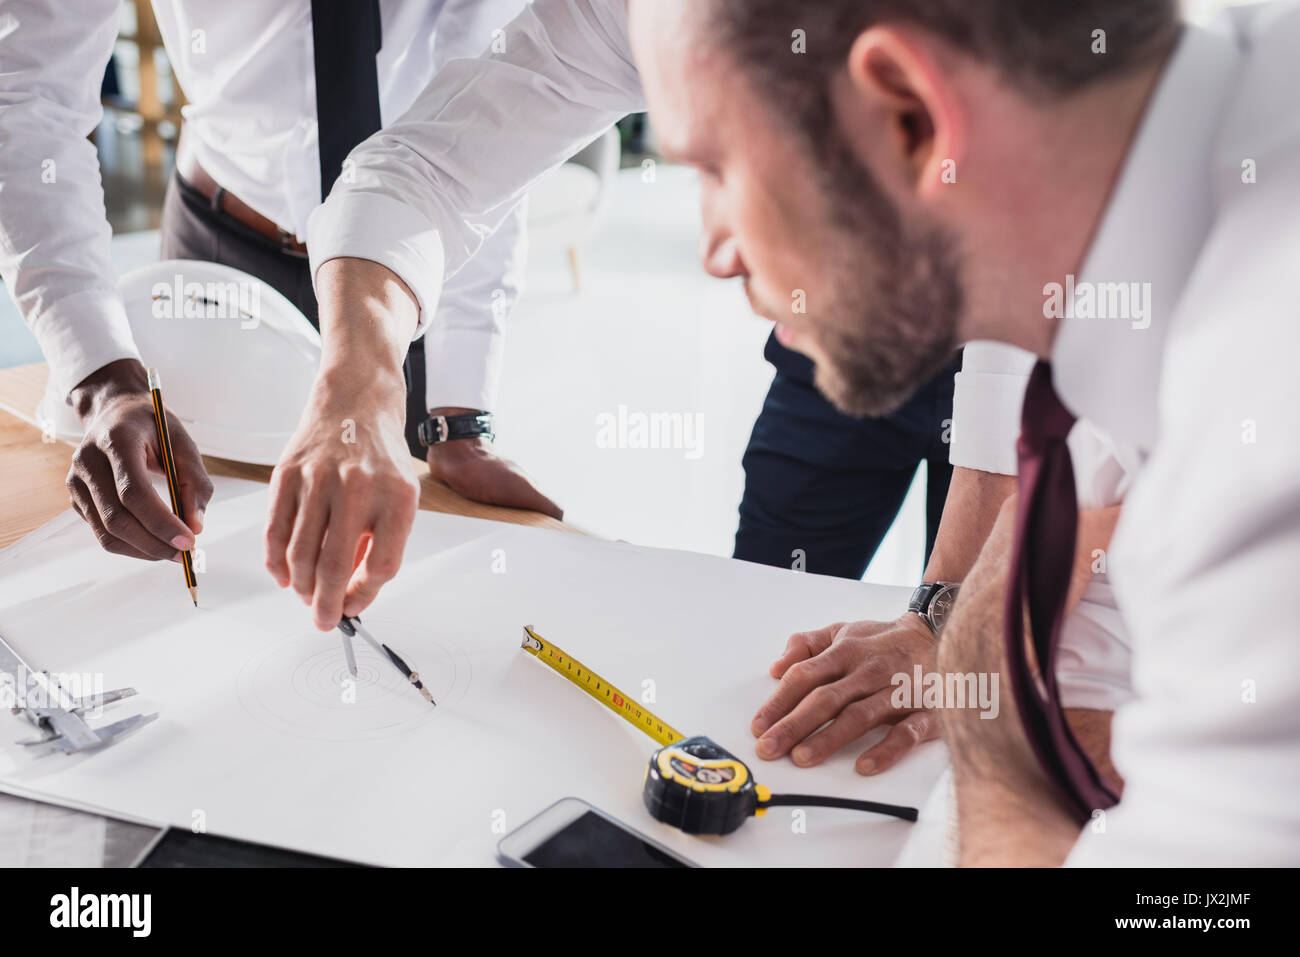 team of architects working on plan together in modern office - Stock Image